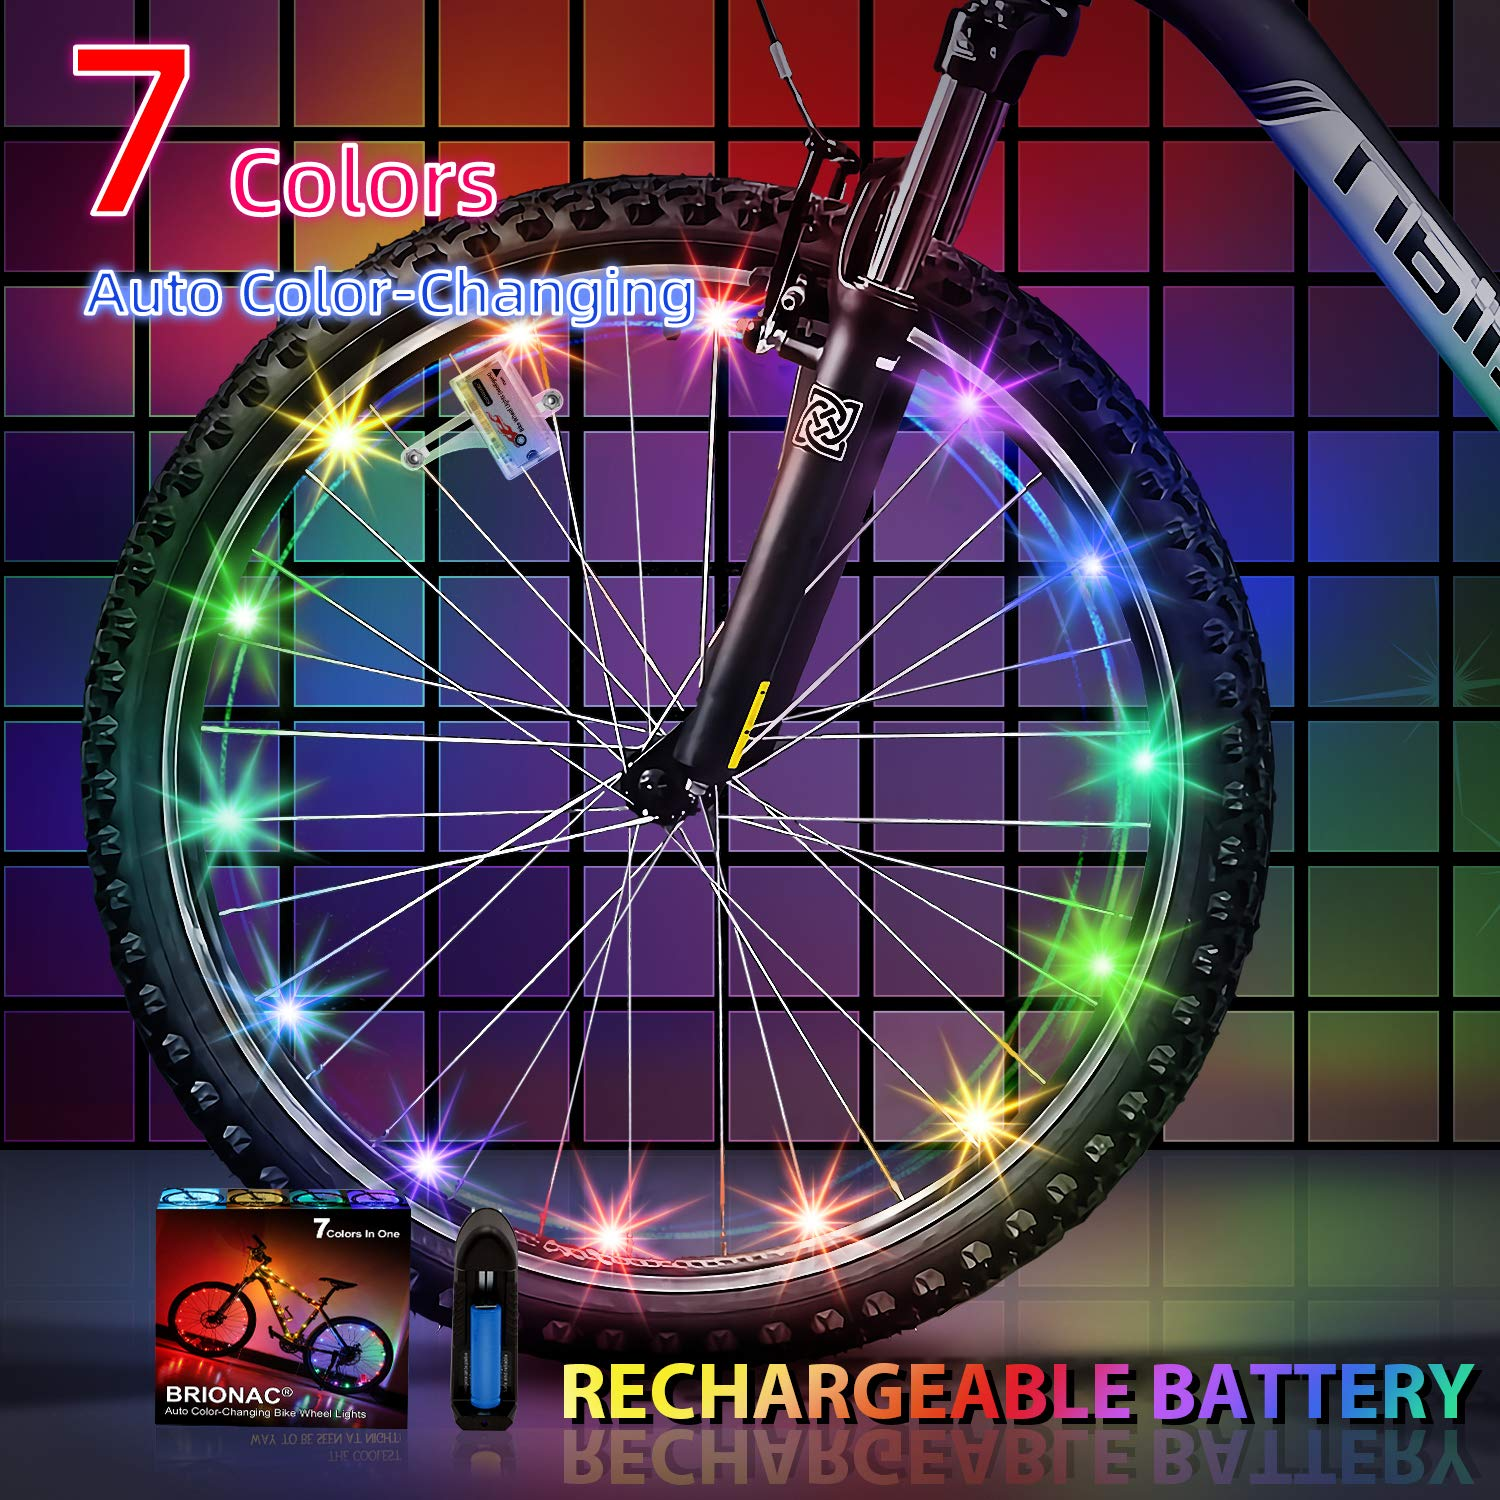 BRIONAC LED Bike Wheel Lights, Automatic Lighting, Light Sensitive Feature Added, Waterproof Bicycle Wheel Light String with Batteries Included, Ultra Bright 1Pack